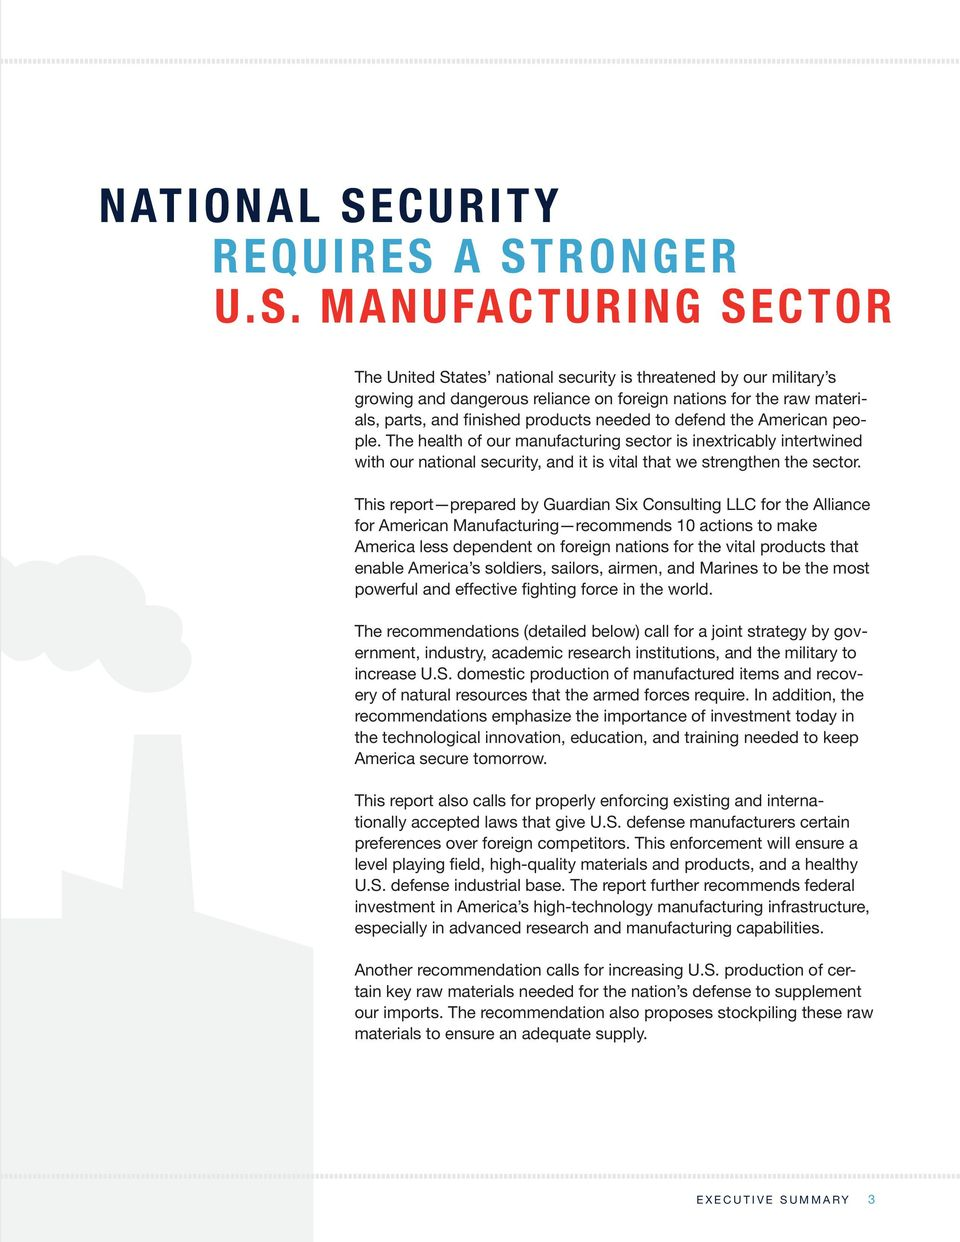 A STRONGER U.S. MANUFACTURING SECTOR The United States national security is threatened by our military s growing and dangerous reliance on foreign nations for the raw materials, parts, and finished